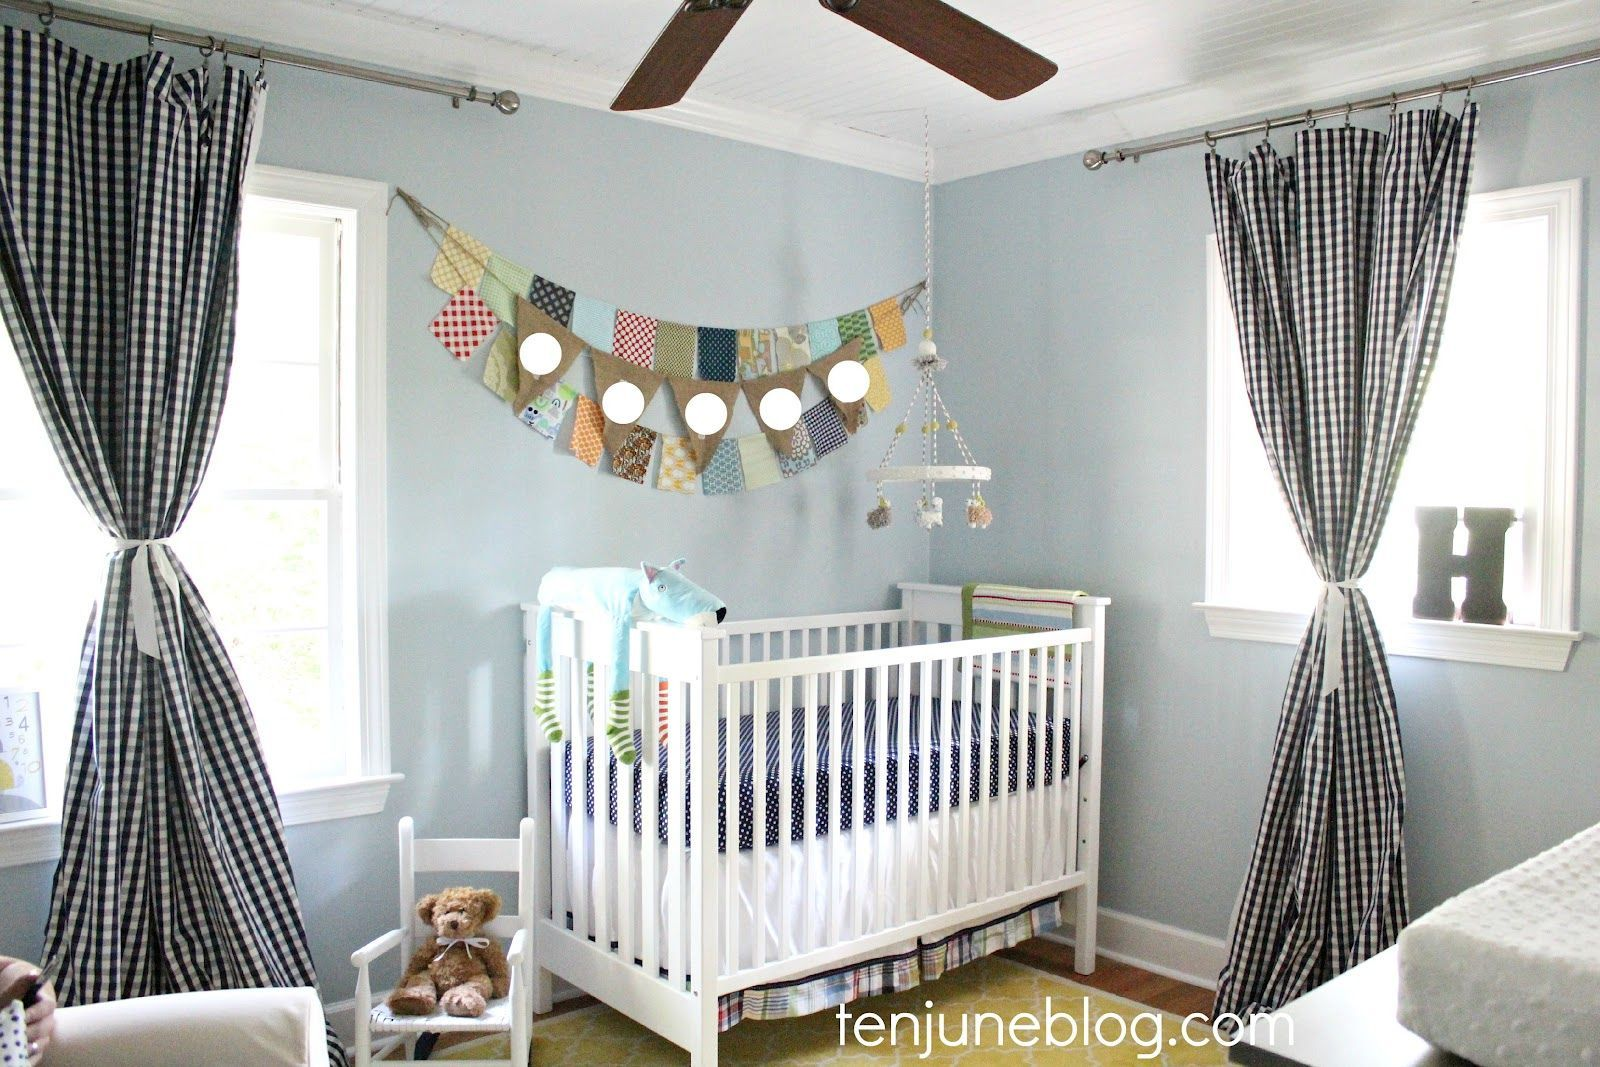 55 Baby Room Curtains Ideas Wall Art For Bedroom Check More At Http